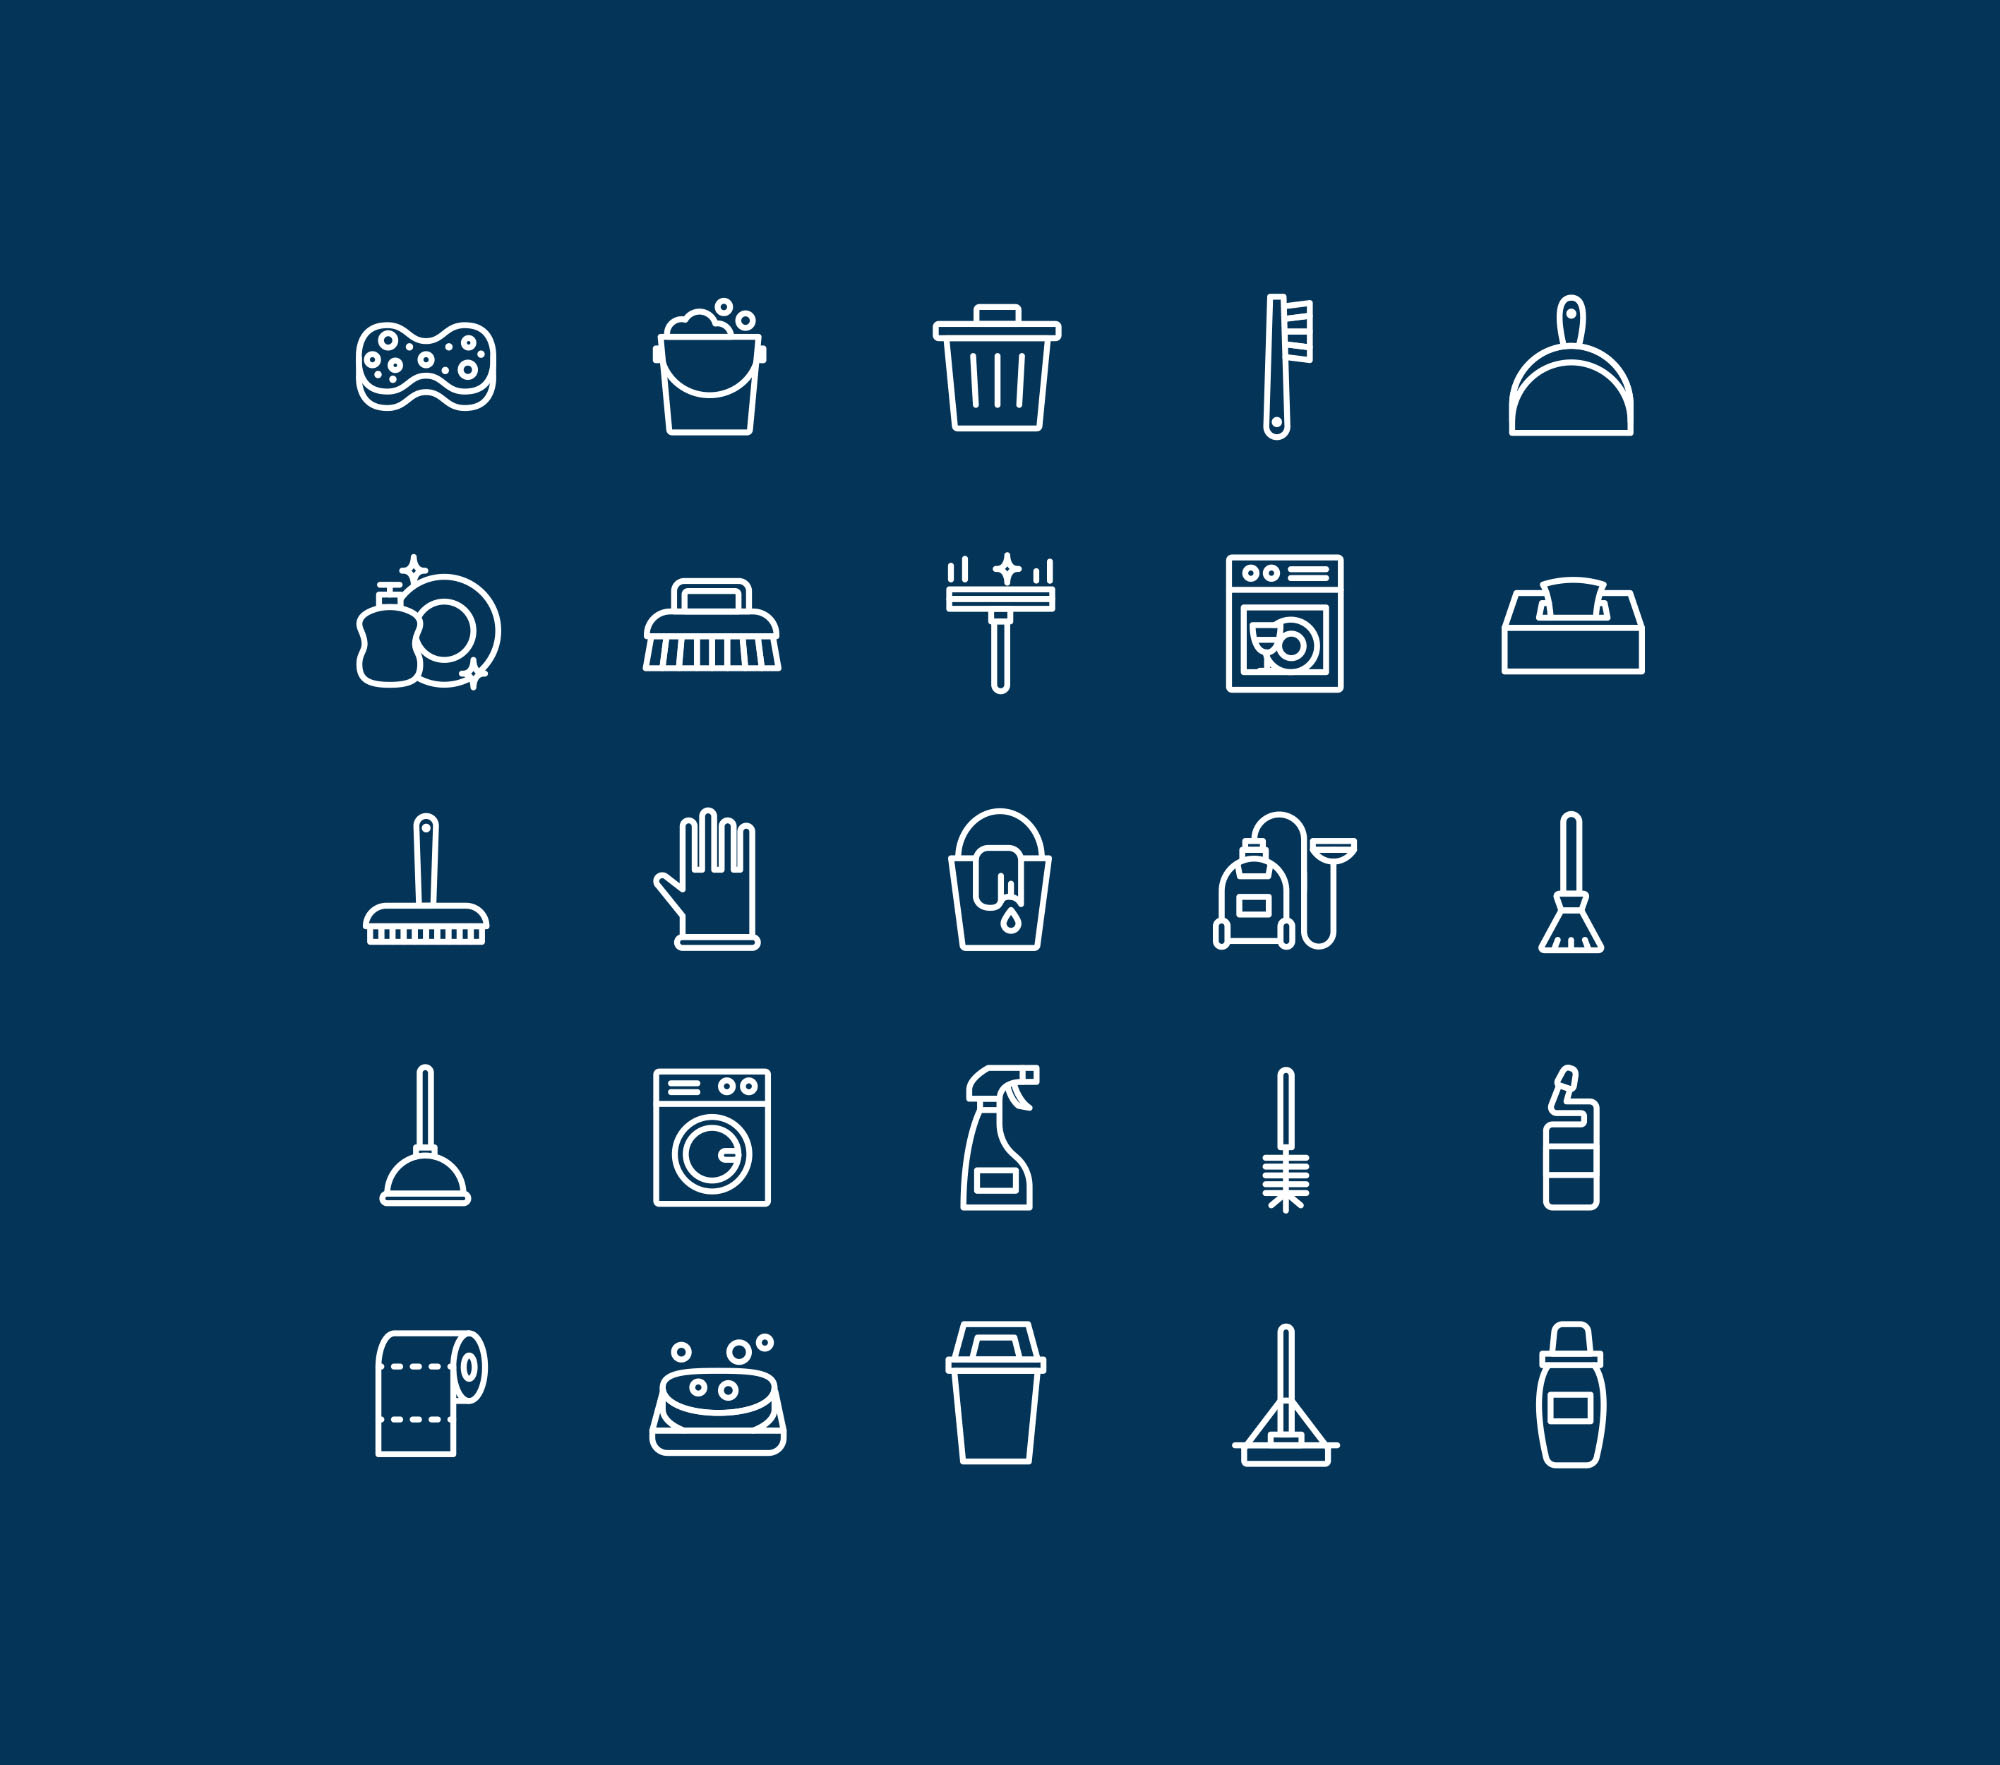 Cleaning Icons - Dark